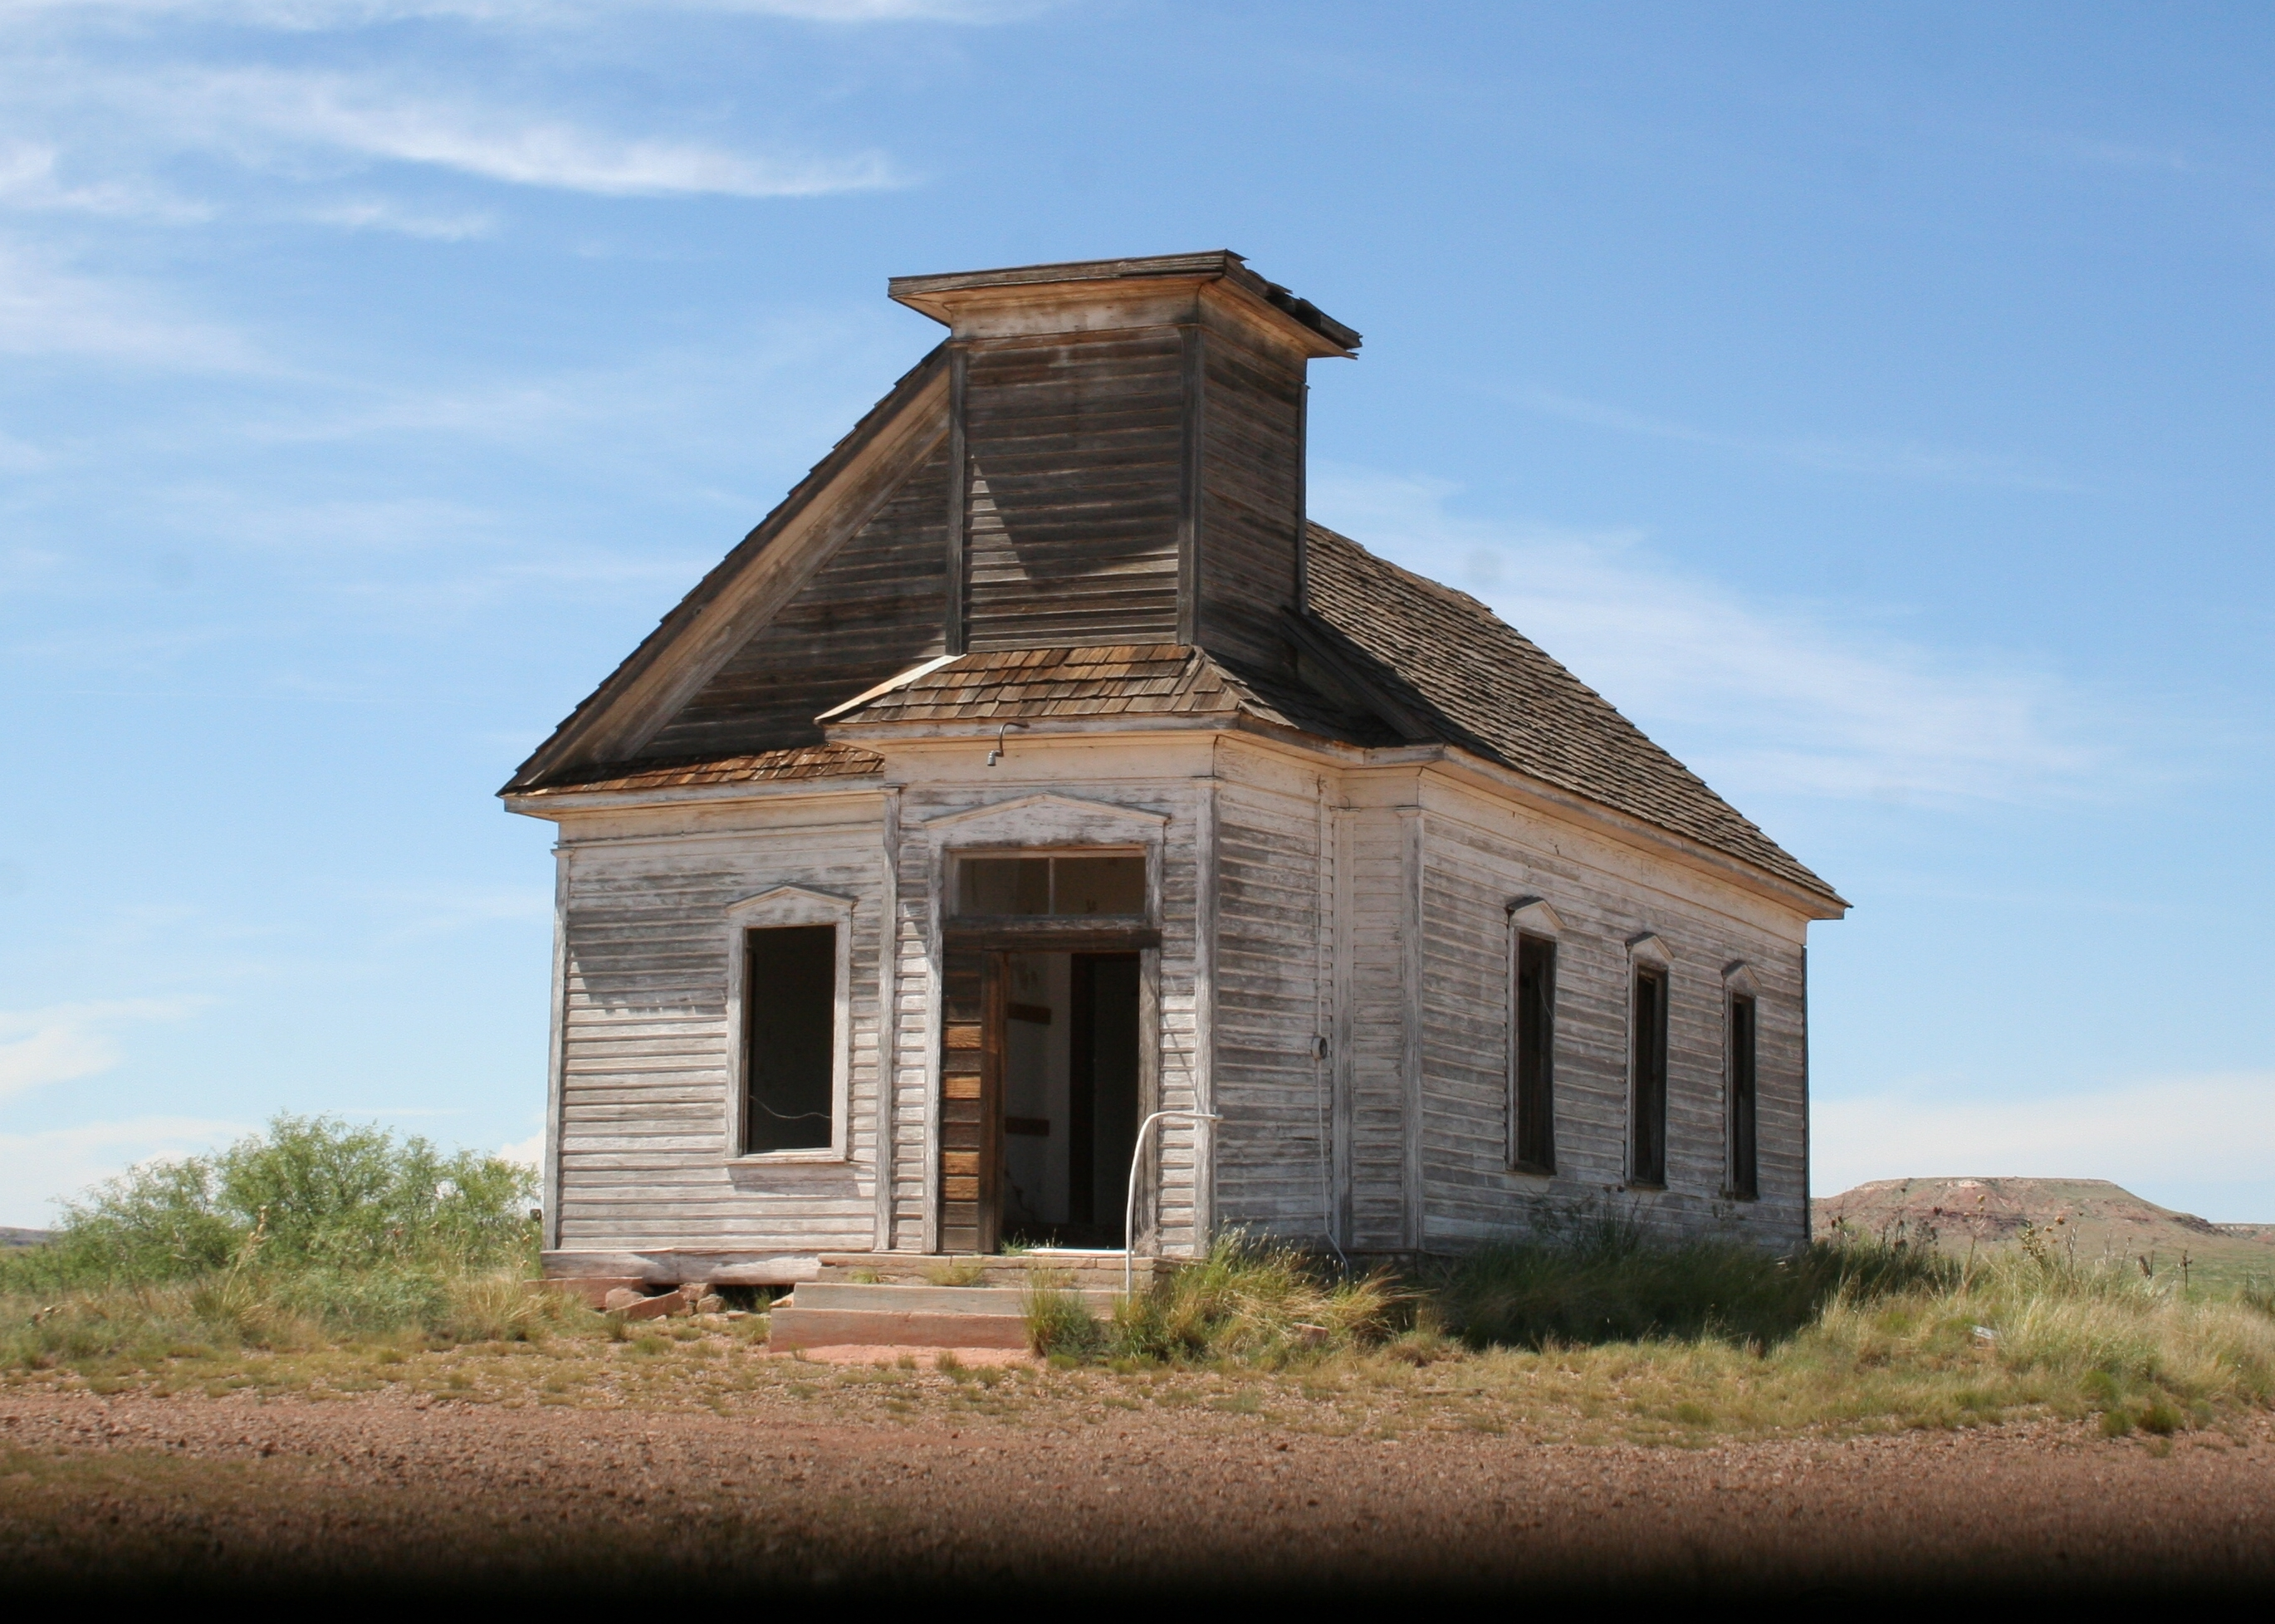 File:abandoned Church in New